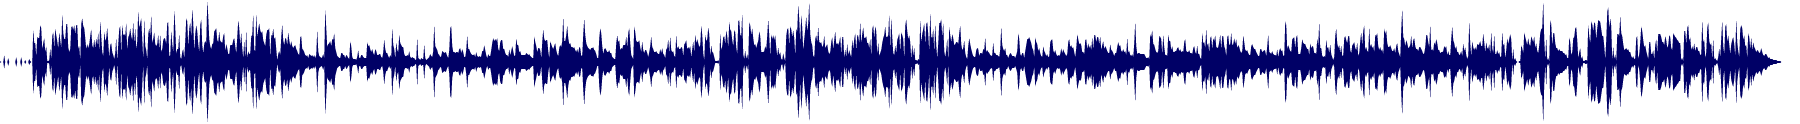 waveform of track #70049